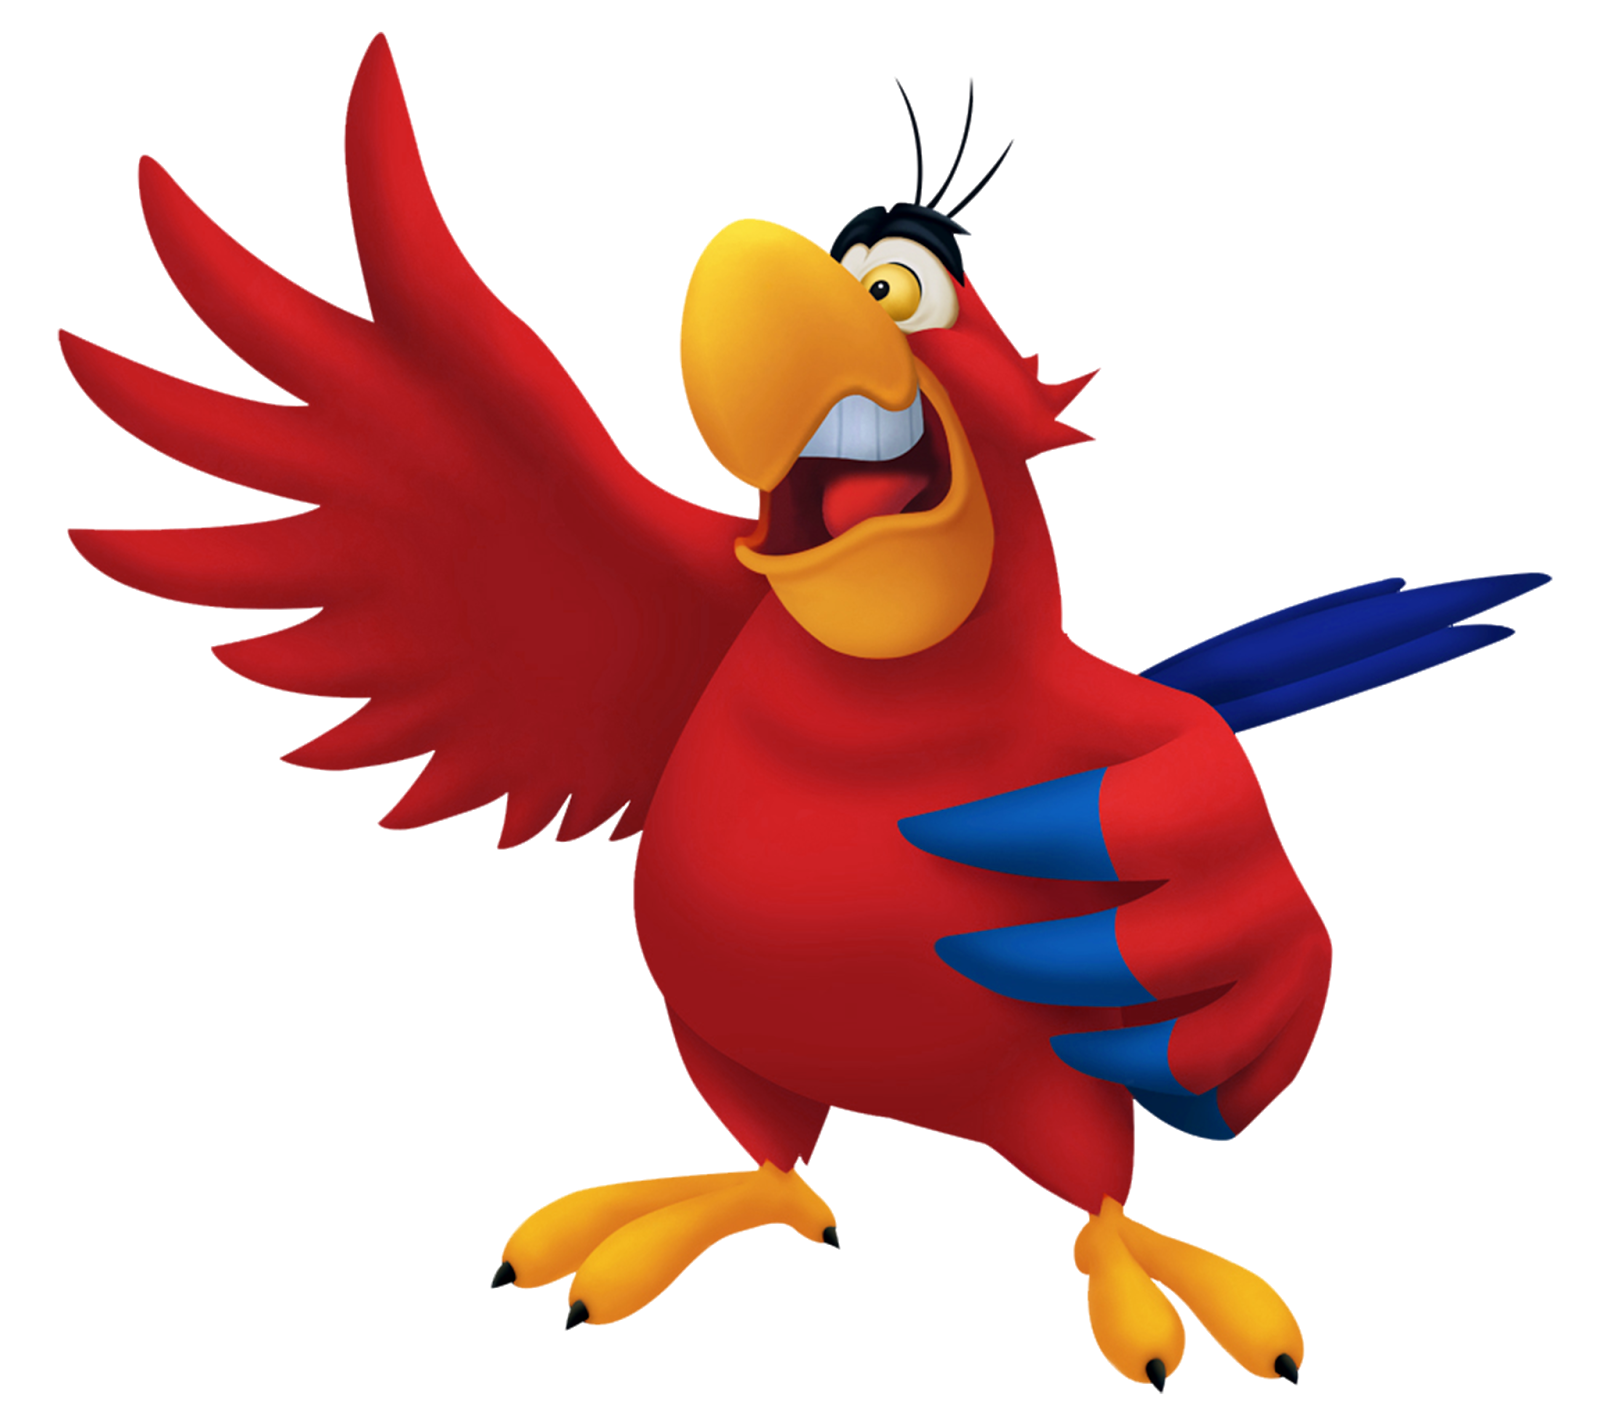 Png Fliegender Teppich Central Photoshop Cartoon Characters Png Download